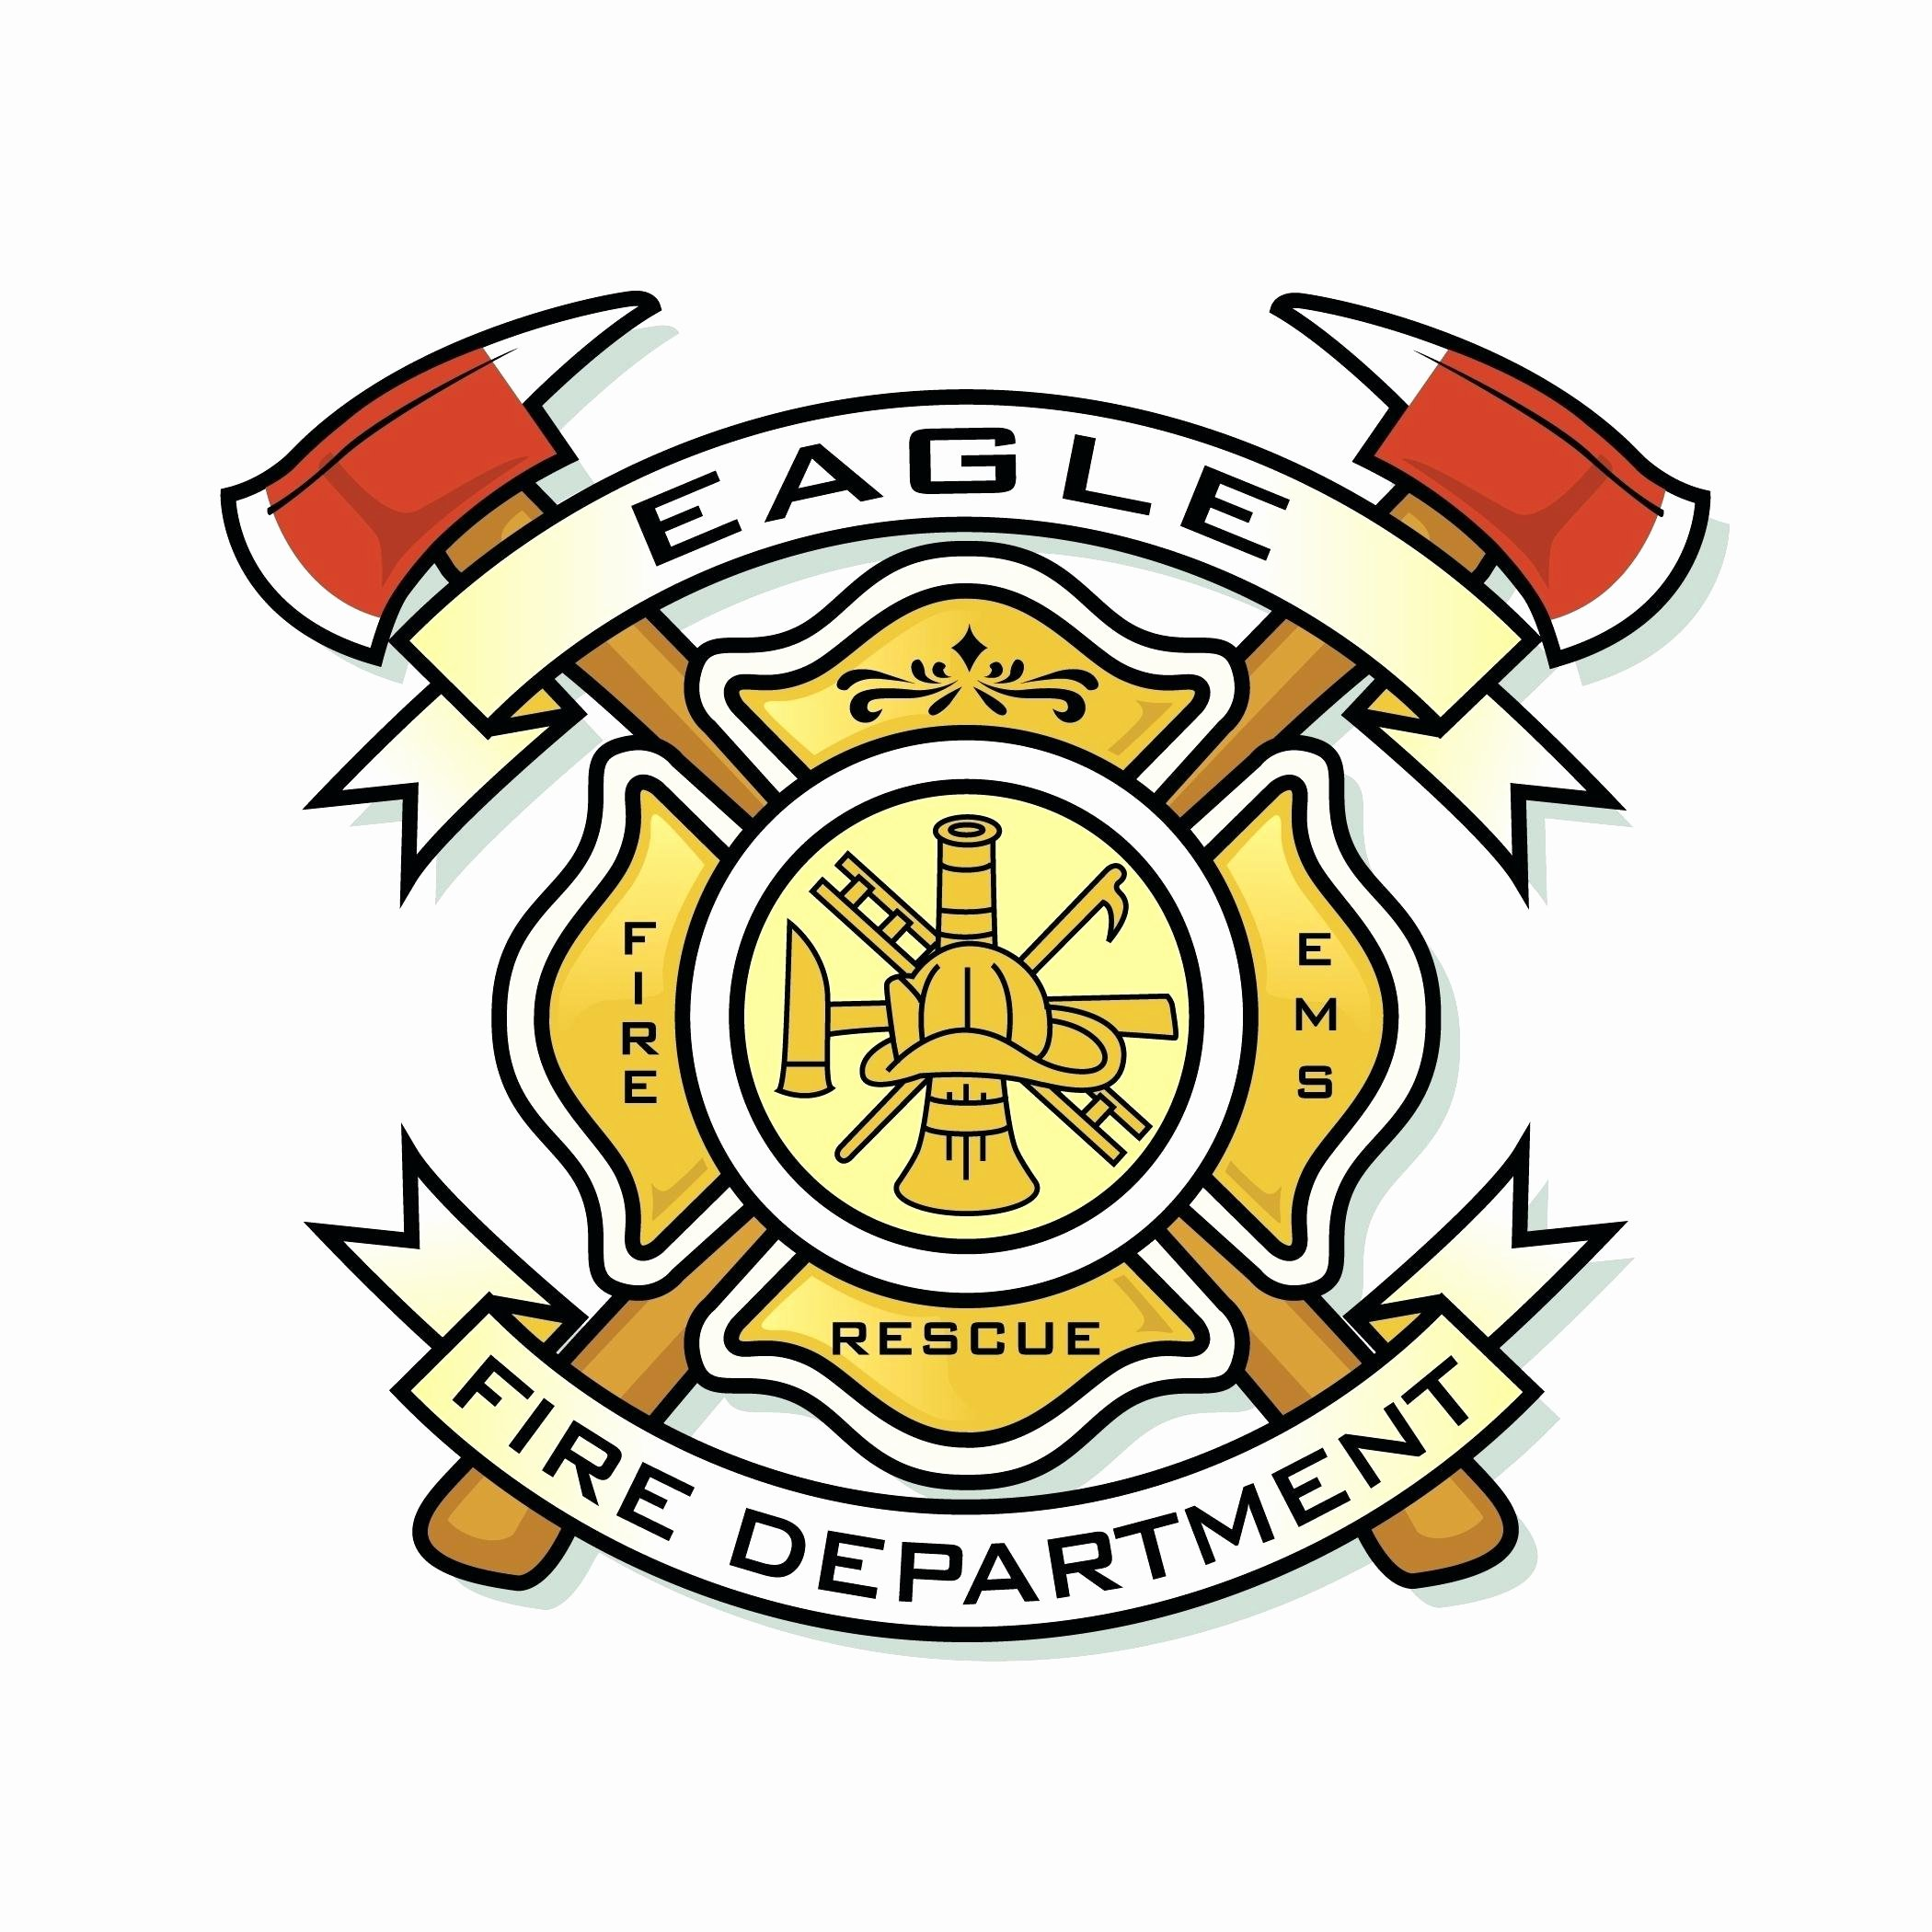 Fire Department Patch Template